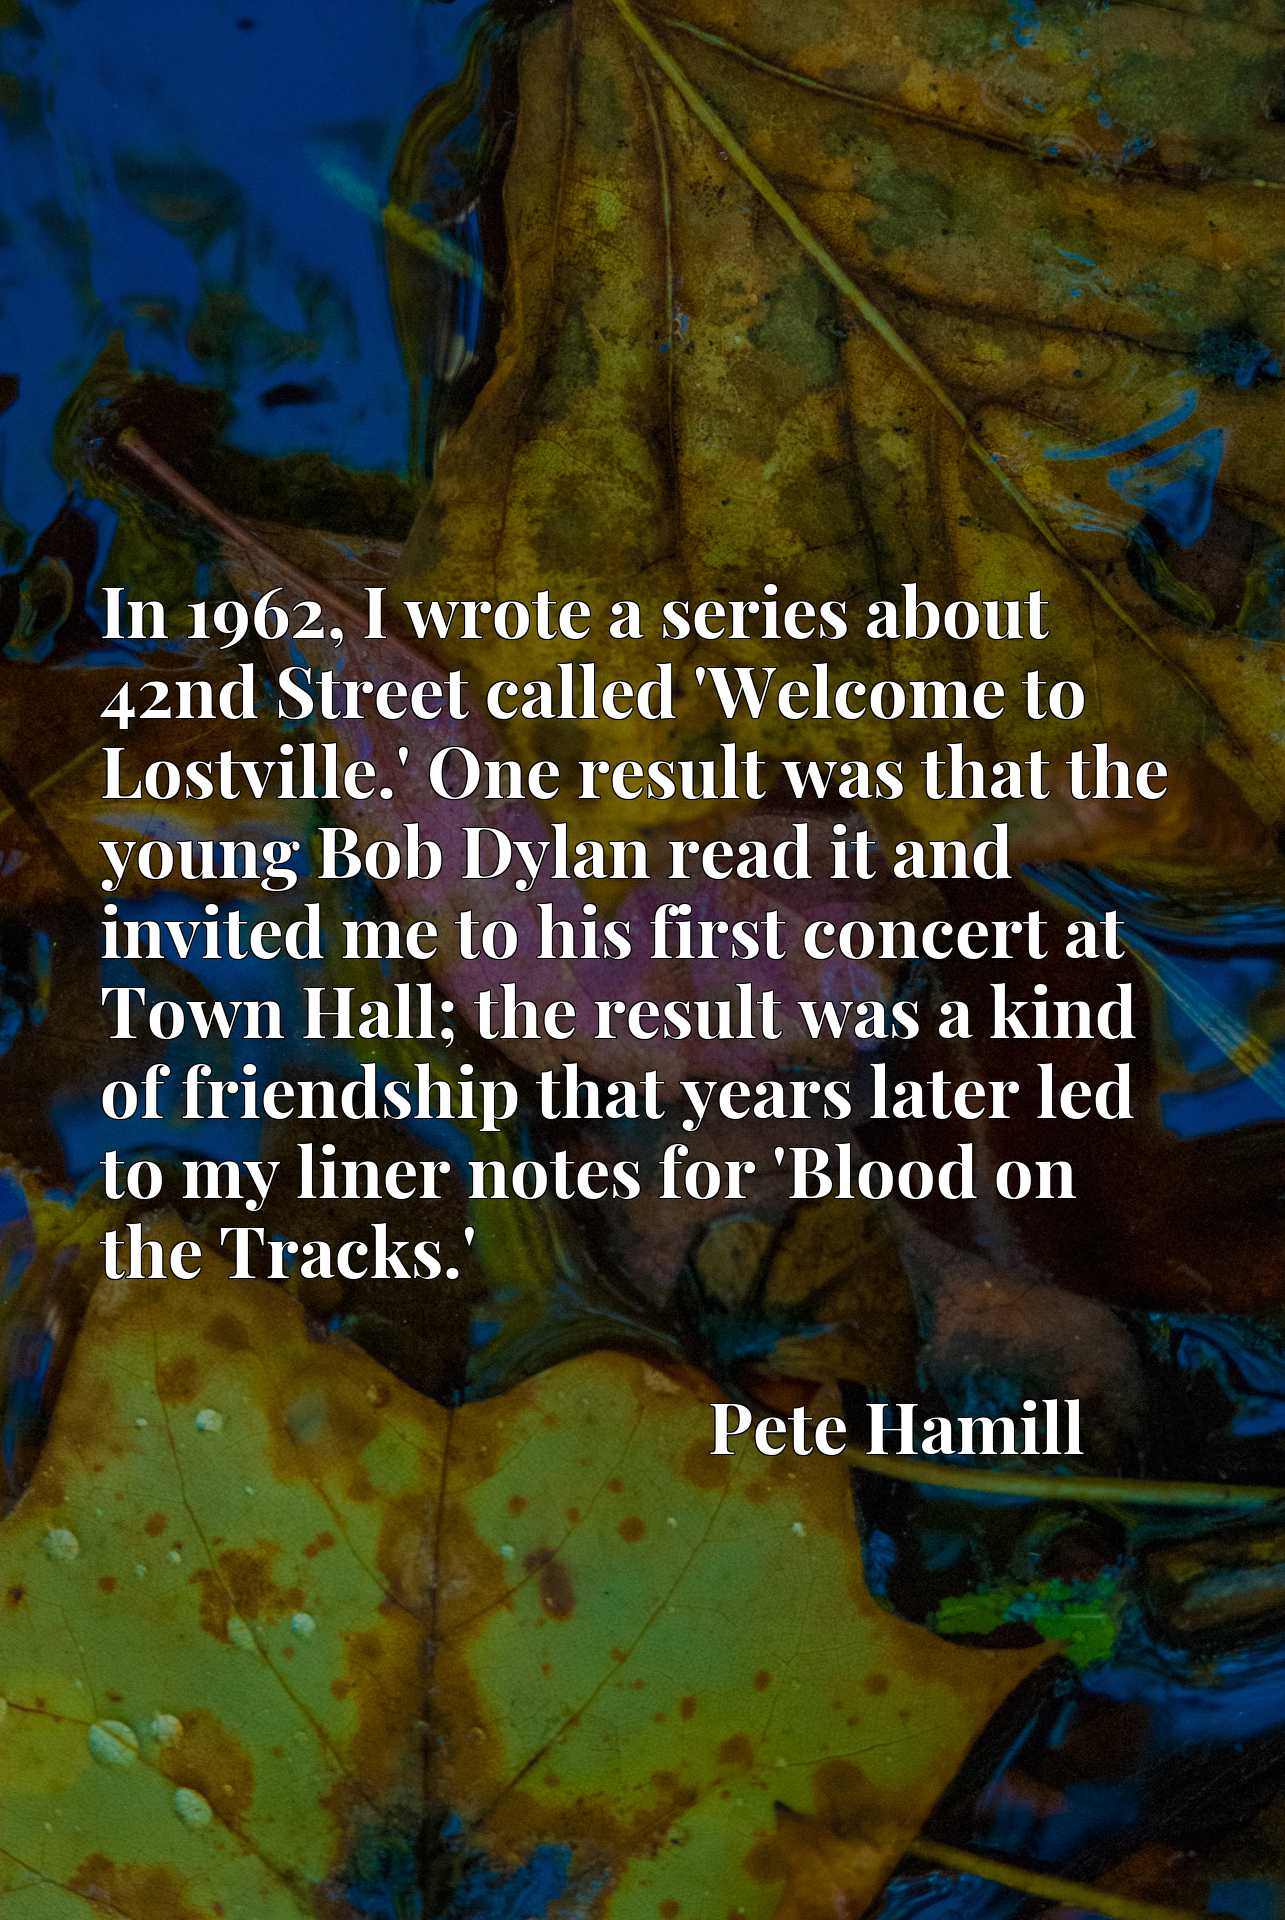 In 1962, I wrote a series about 42nd Street called 'Welcome to Lostville.' One result was that the young Bob Dylan read it and invited me to his first concert at Town Hall; the result was a kind of friendship that years later led to my liner notes for 'Blood on the Tracks.'